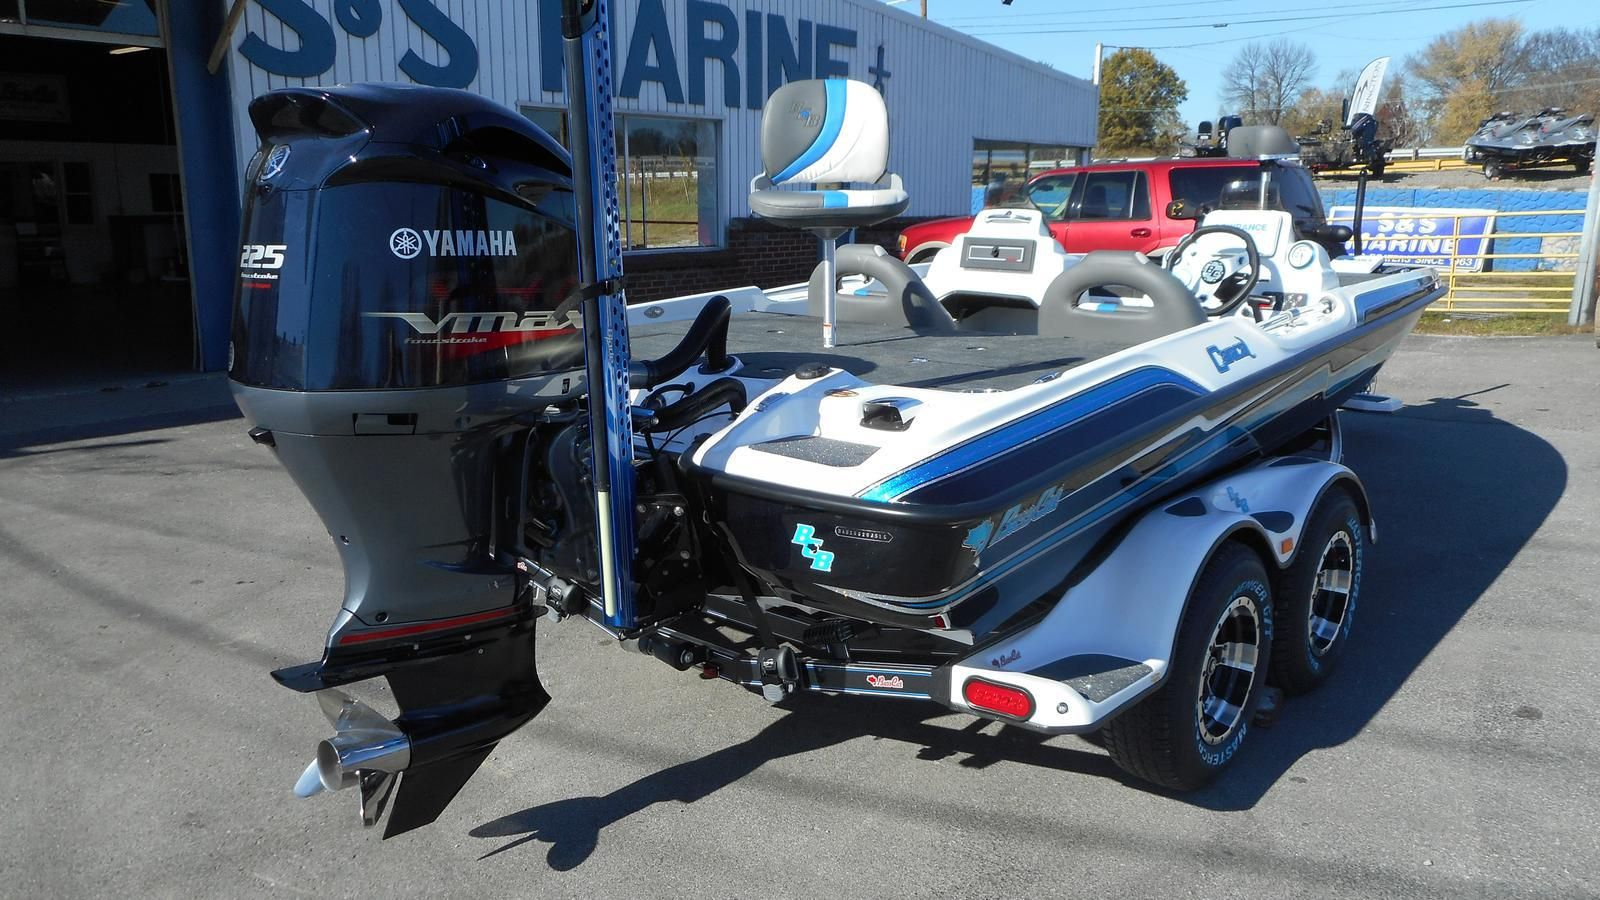 2016 Bass Cat Boats Caracal Bass boat, Flat bottom boats